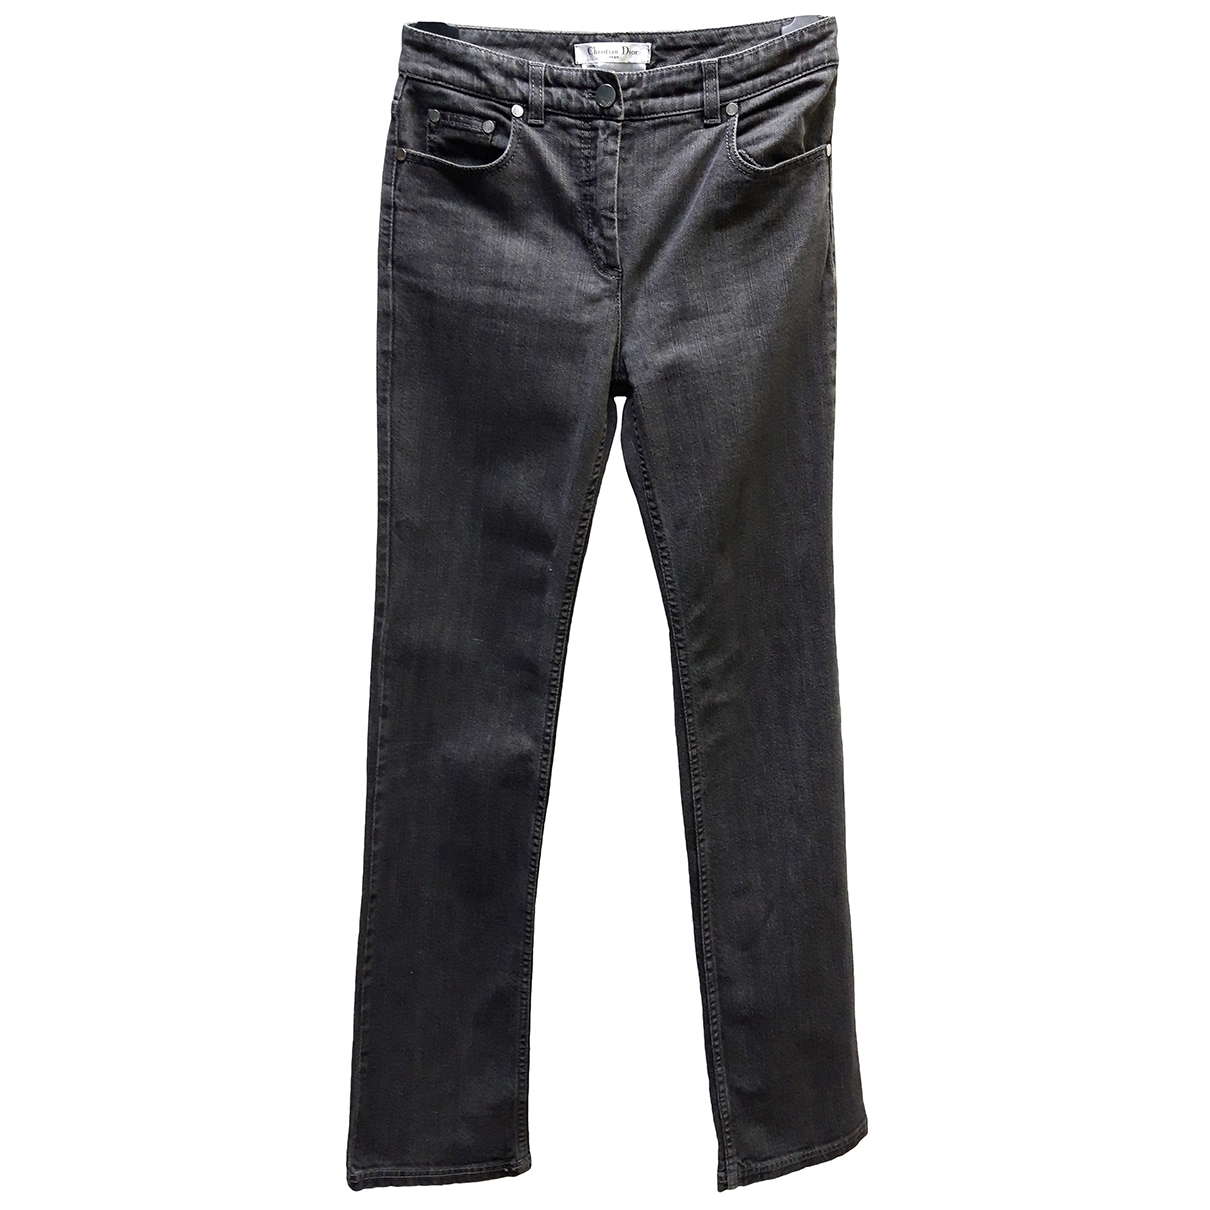 Christian Dior \N Anthracite Cotton - elasthane Jeans for Women 36 FR